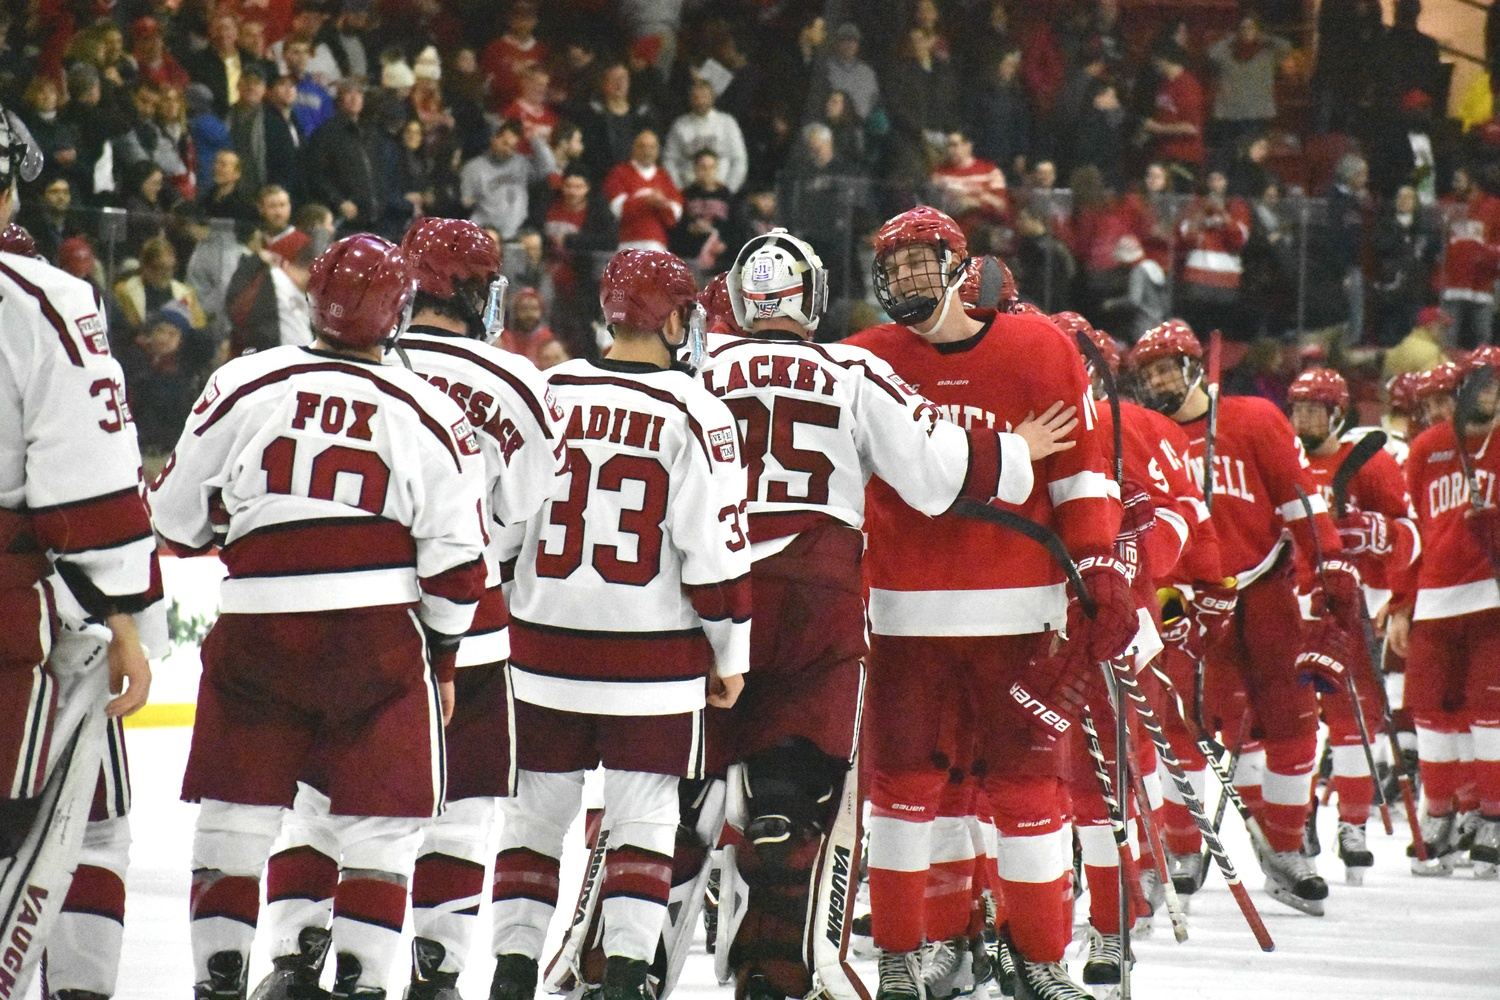 In 2017-18, Cornell swept Harvard in two meetings; in 2016-2017, the Crimson defeated the Big Red in three clashes. This time, the two teams will see each other at least thrice to decide which squad comes on top.